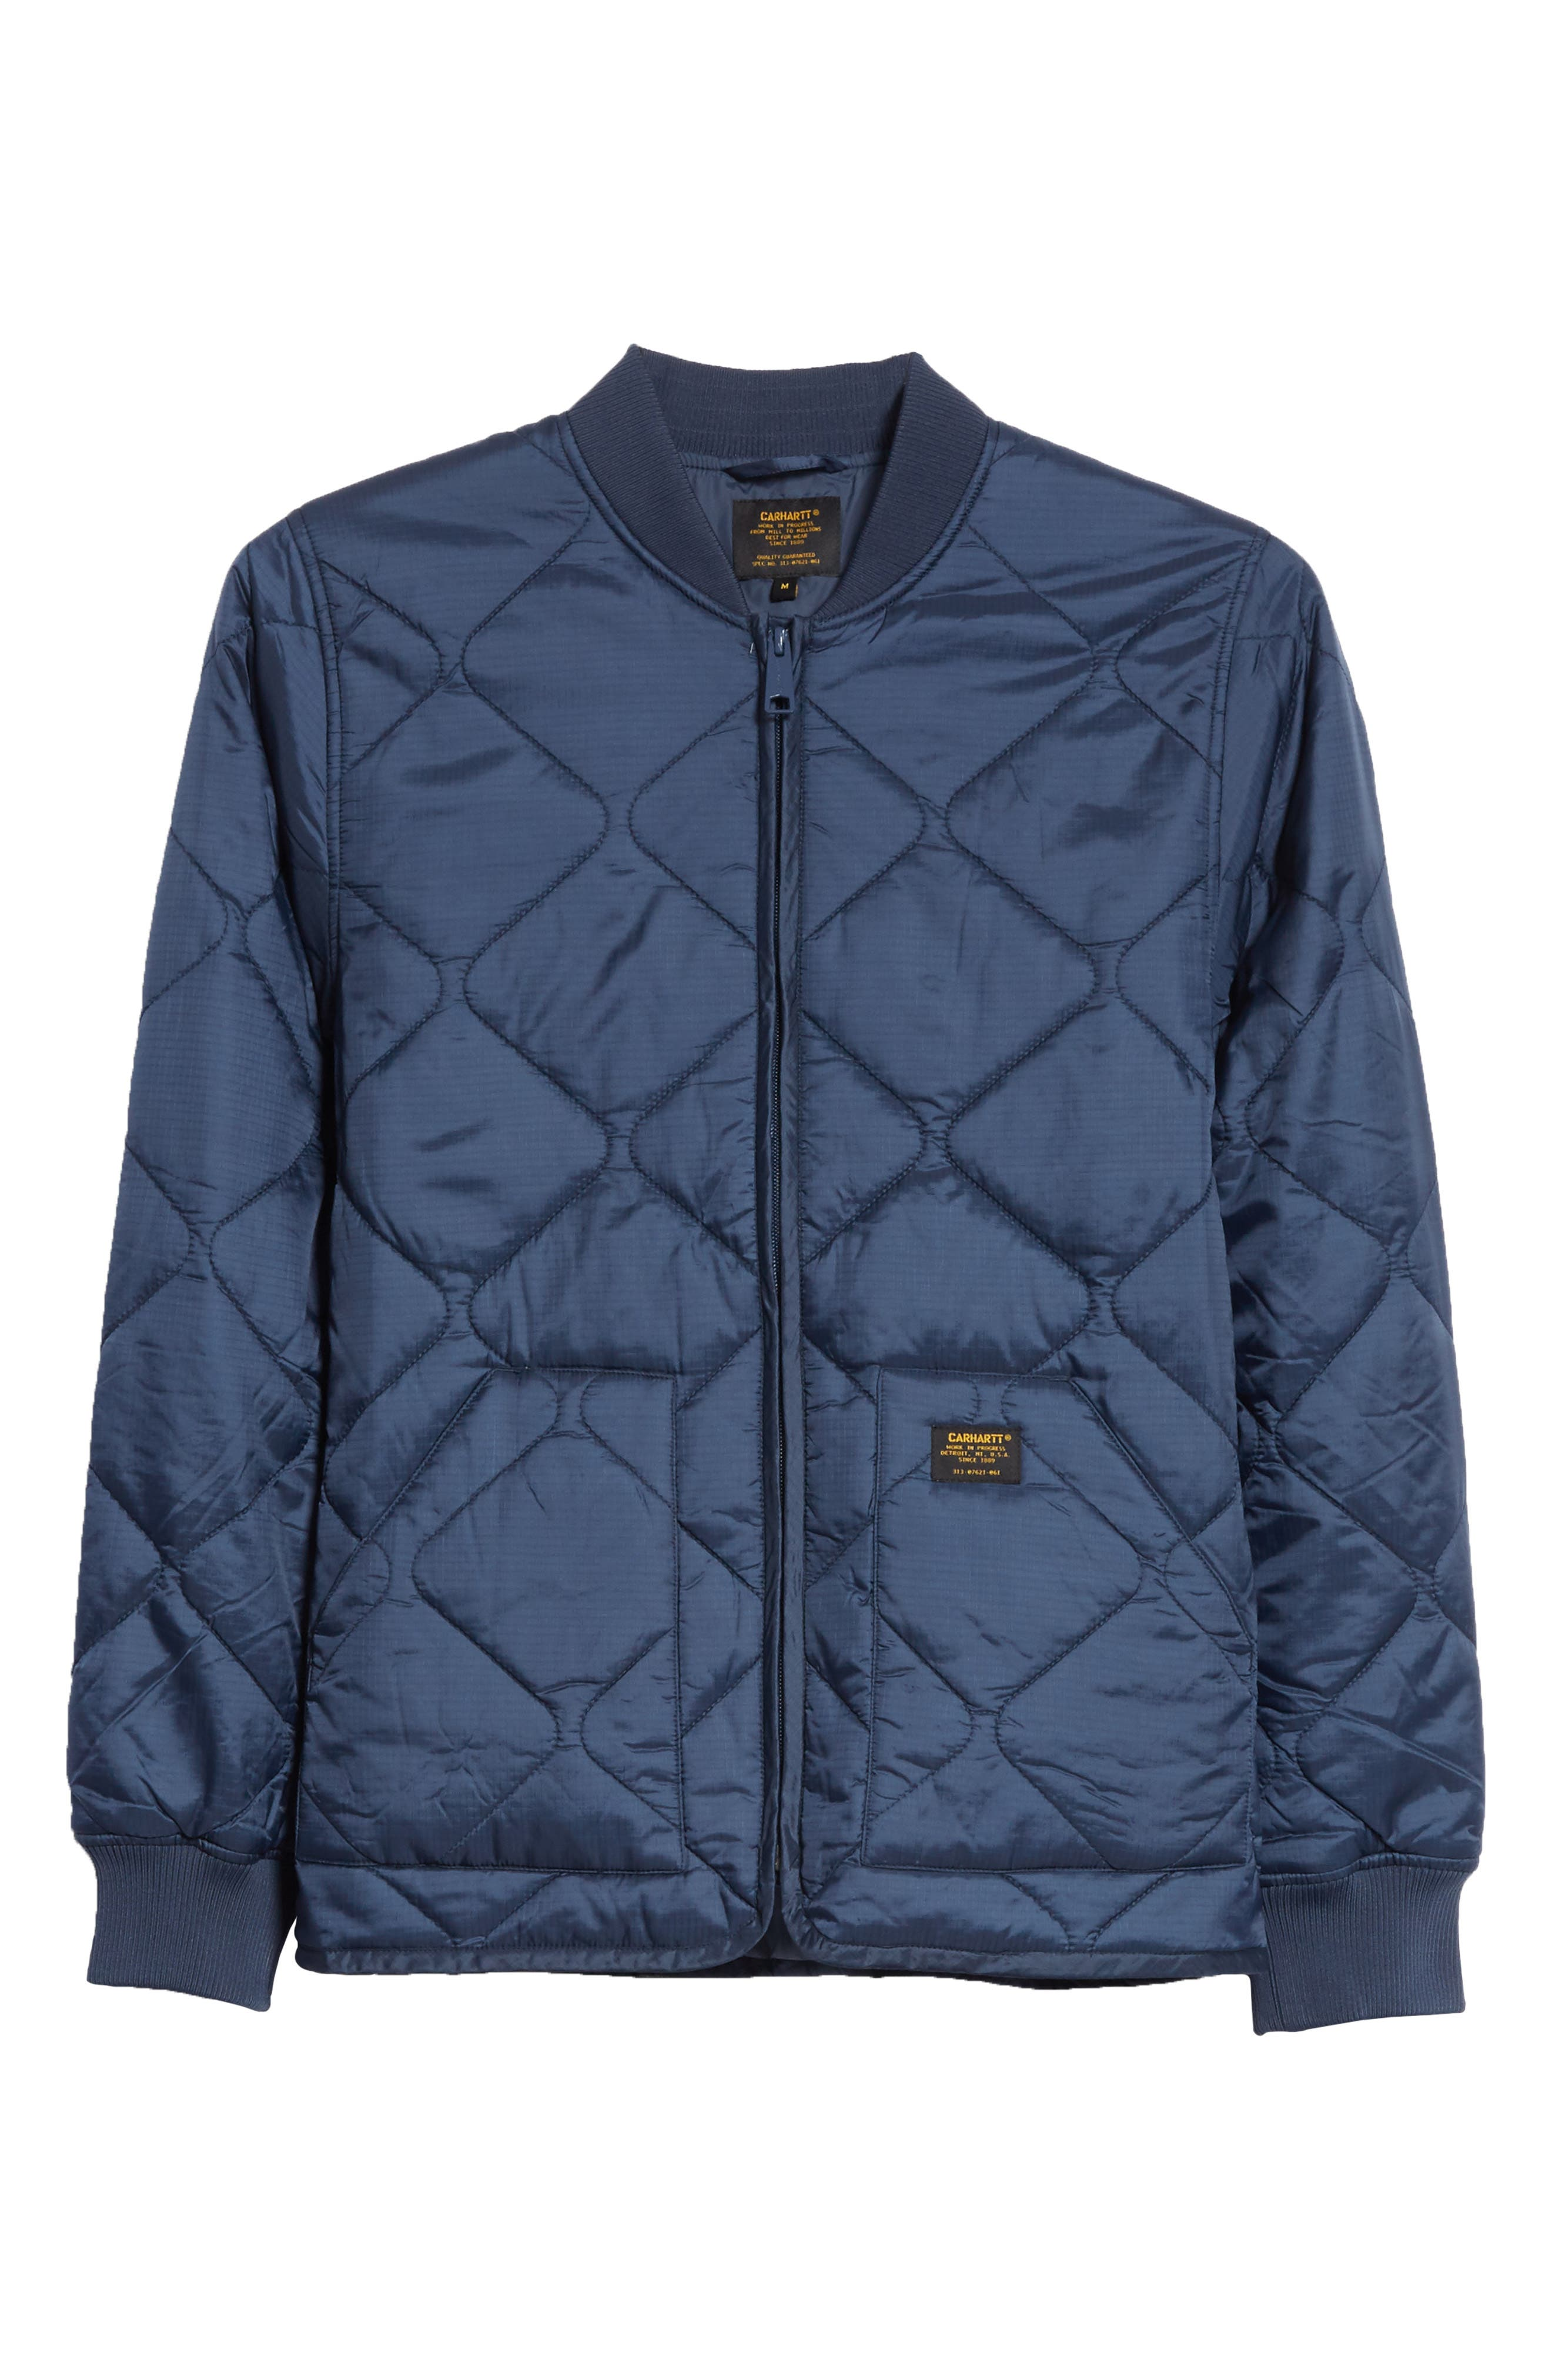 Main Image - Carhartt Work in Progress Quilted Ripstop Bomber Jacket